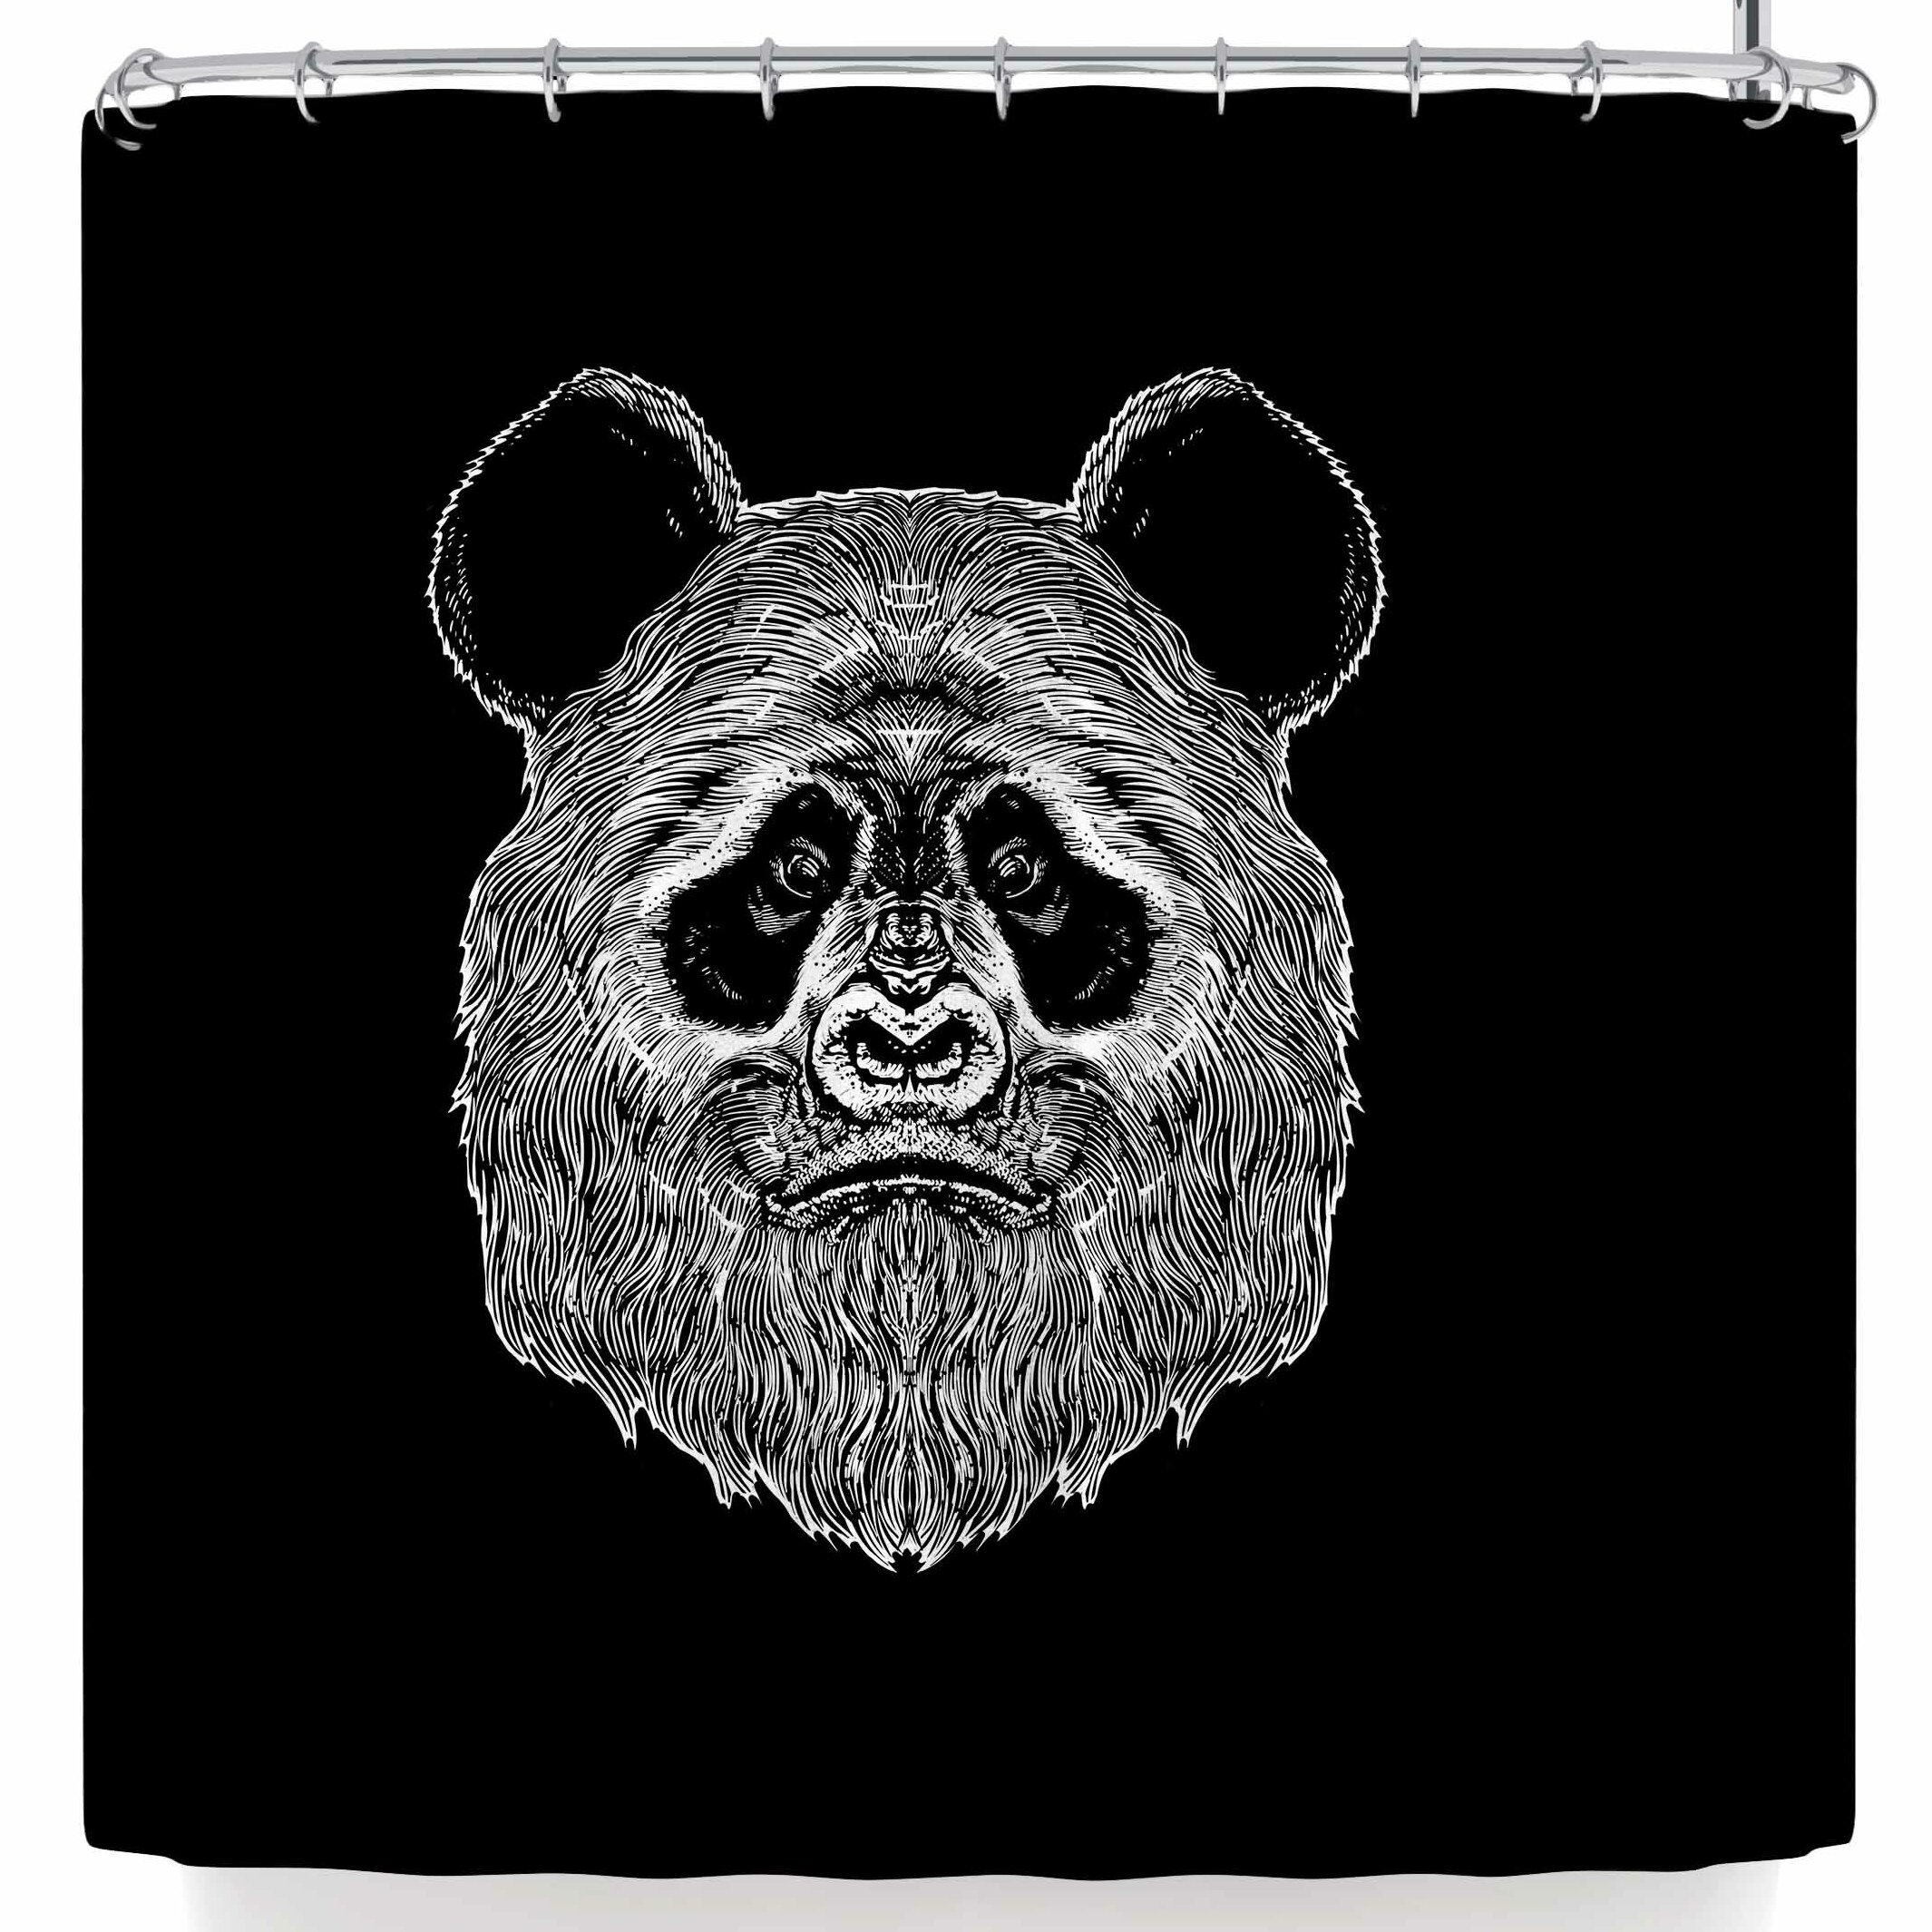 East Urban Home BarmalisiRTB Bigfoot Panda Shower Curtain